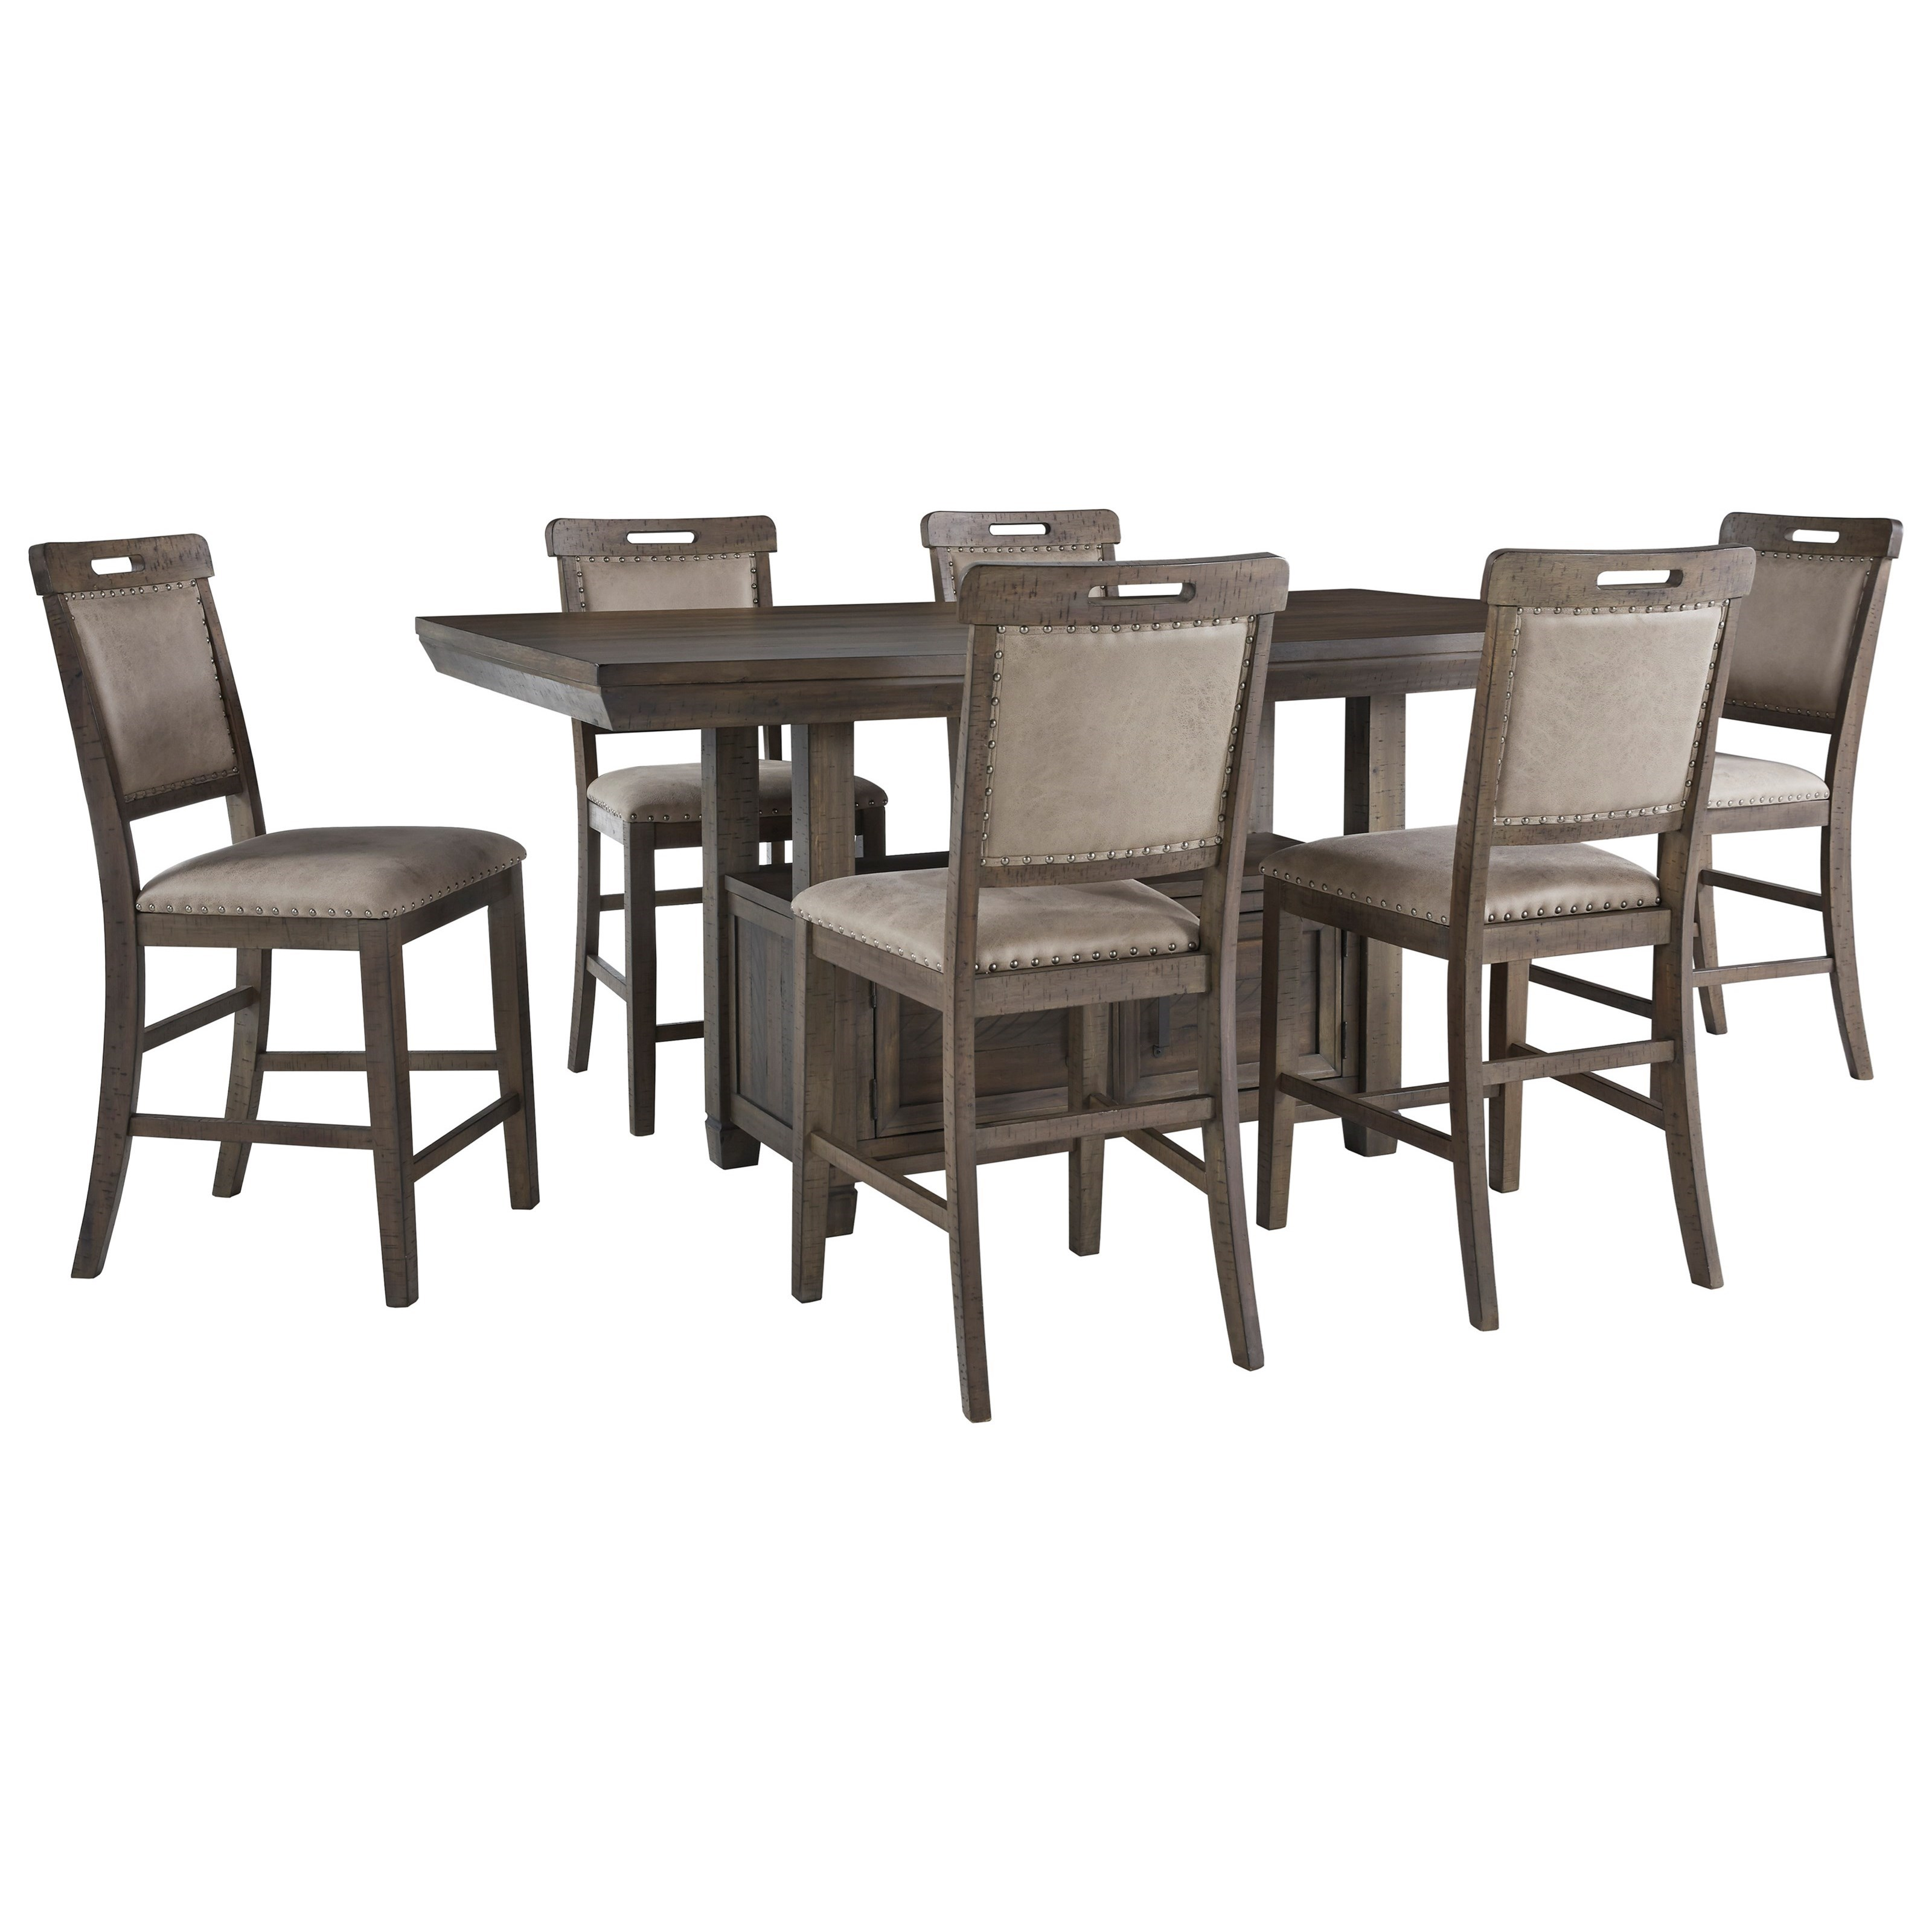 Johurst 7-Piece Counter Height Dining Set by Benchcraft at Walker's Furniture